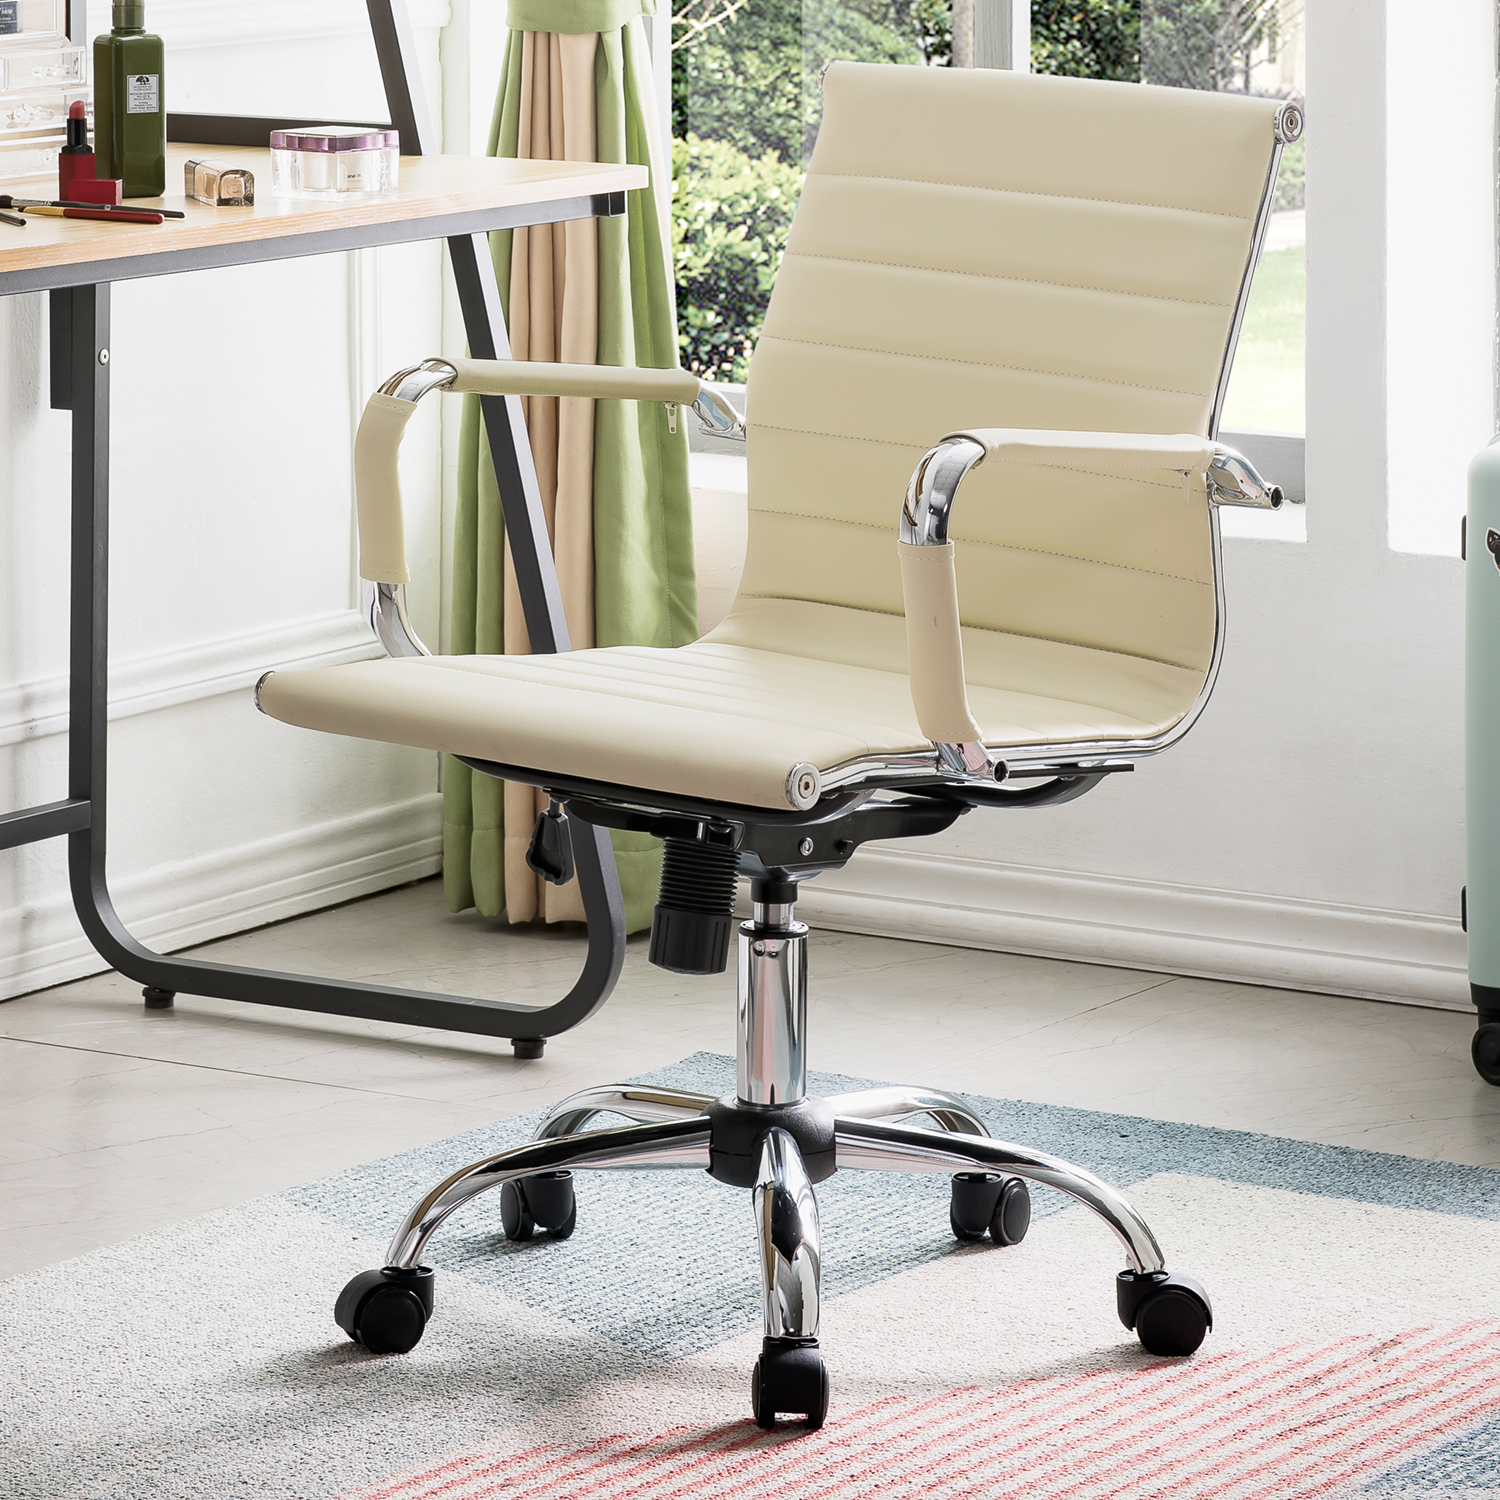 OVIOS Ergonomic Office Chair,Leather Computer Chair For